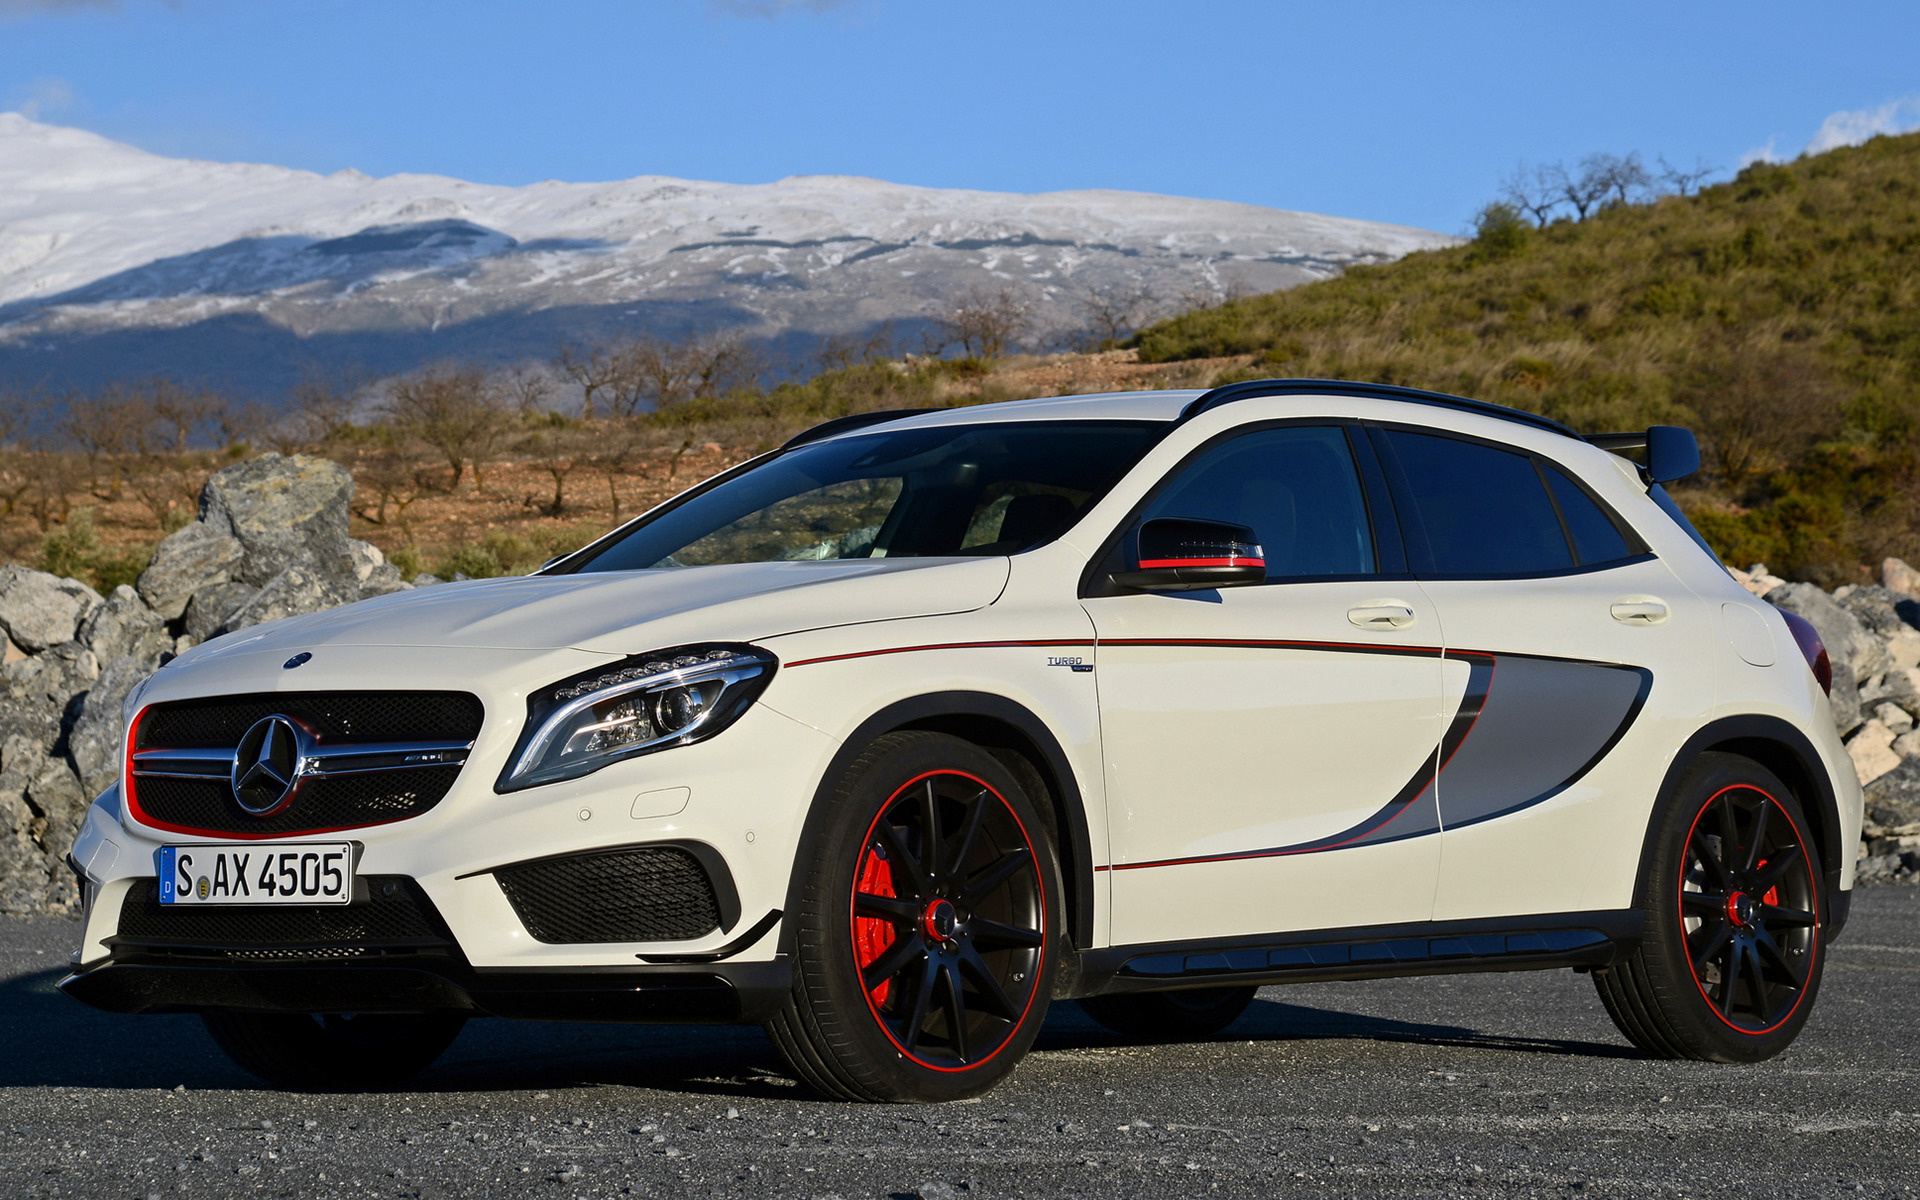 2014 mercedes benz gla 45 amg edition 1 wallpapers and. Black Bedroom Furniture Sets. Home Design Ideas